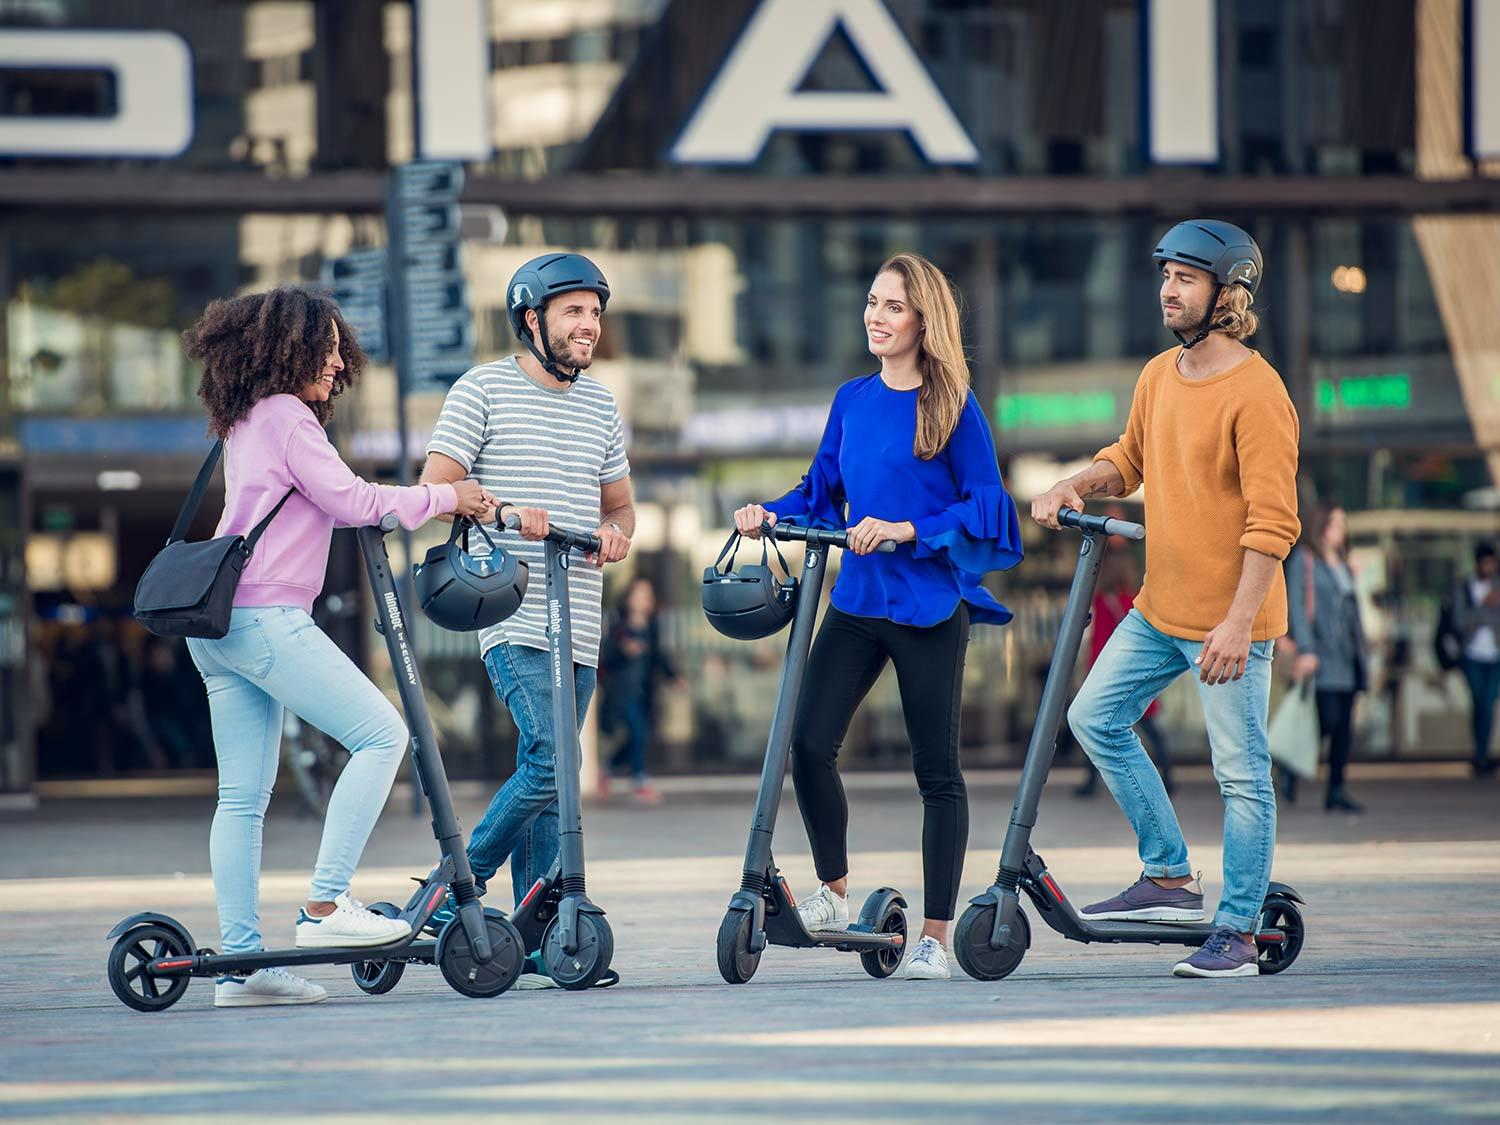 Segway Electric Scooters